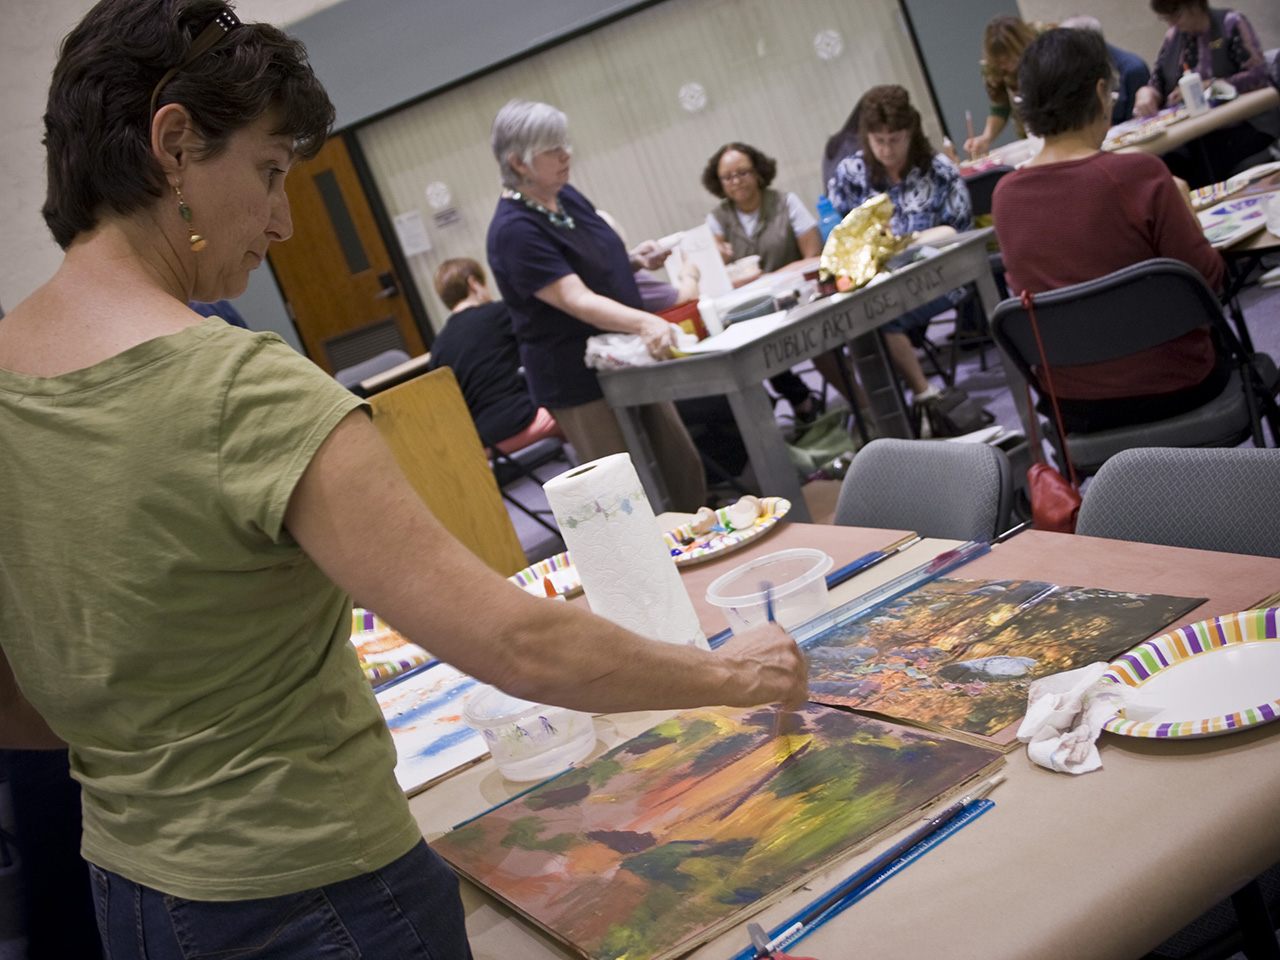 hurricane katrina exhibition with people painting landscape